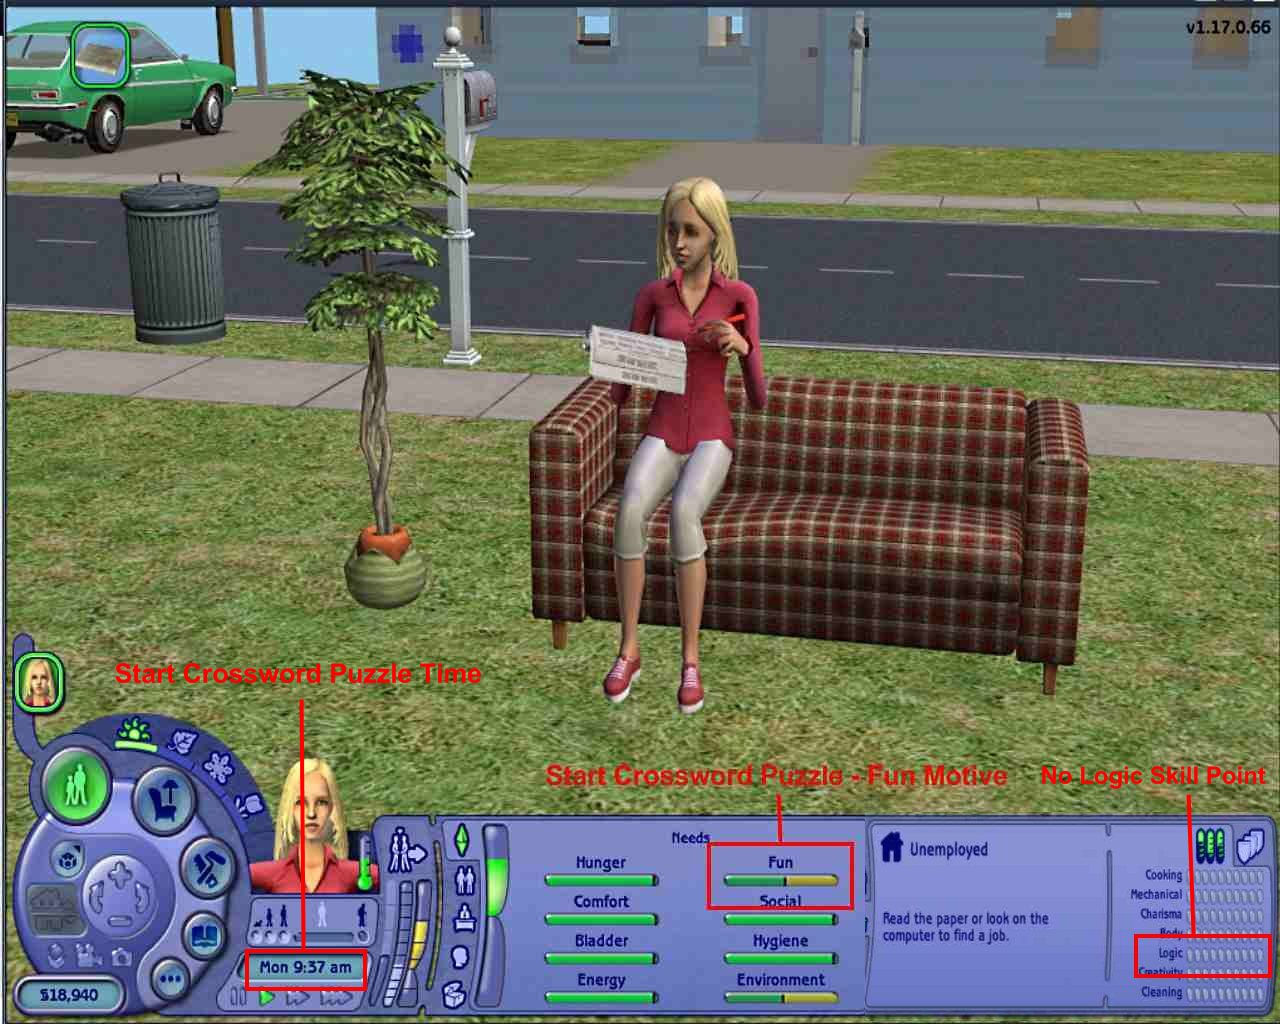 Sims2 nude patch images 692